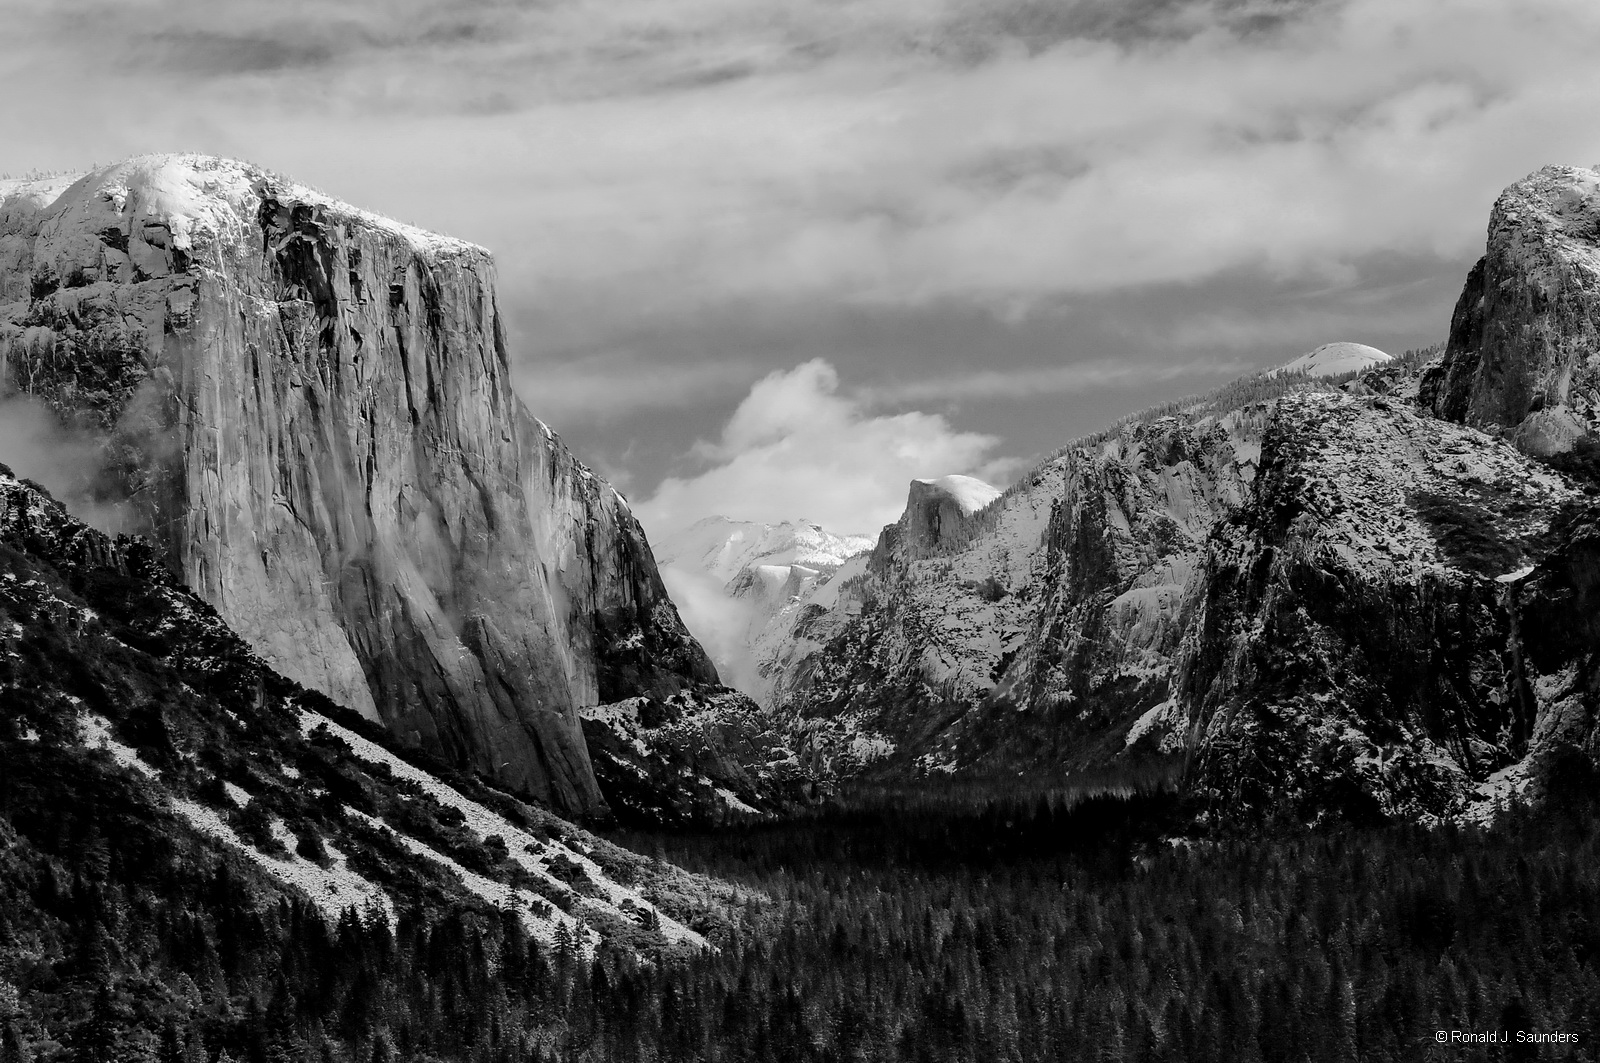 yosemite, classic, yosemite, valley, view, el capitan, half dome, B&W, landscape, photo